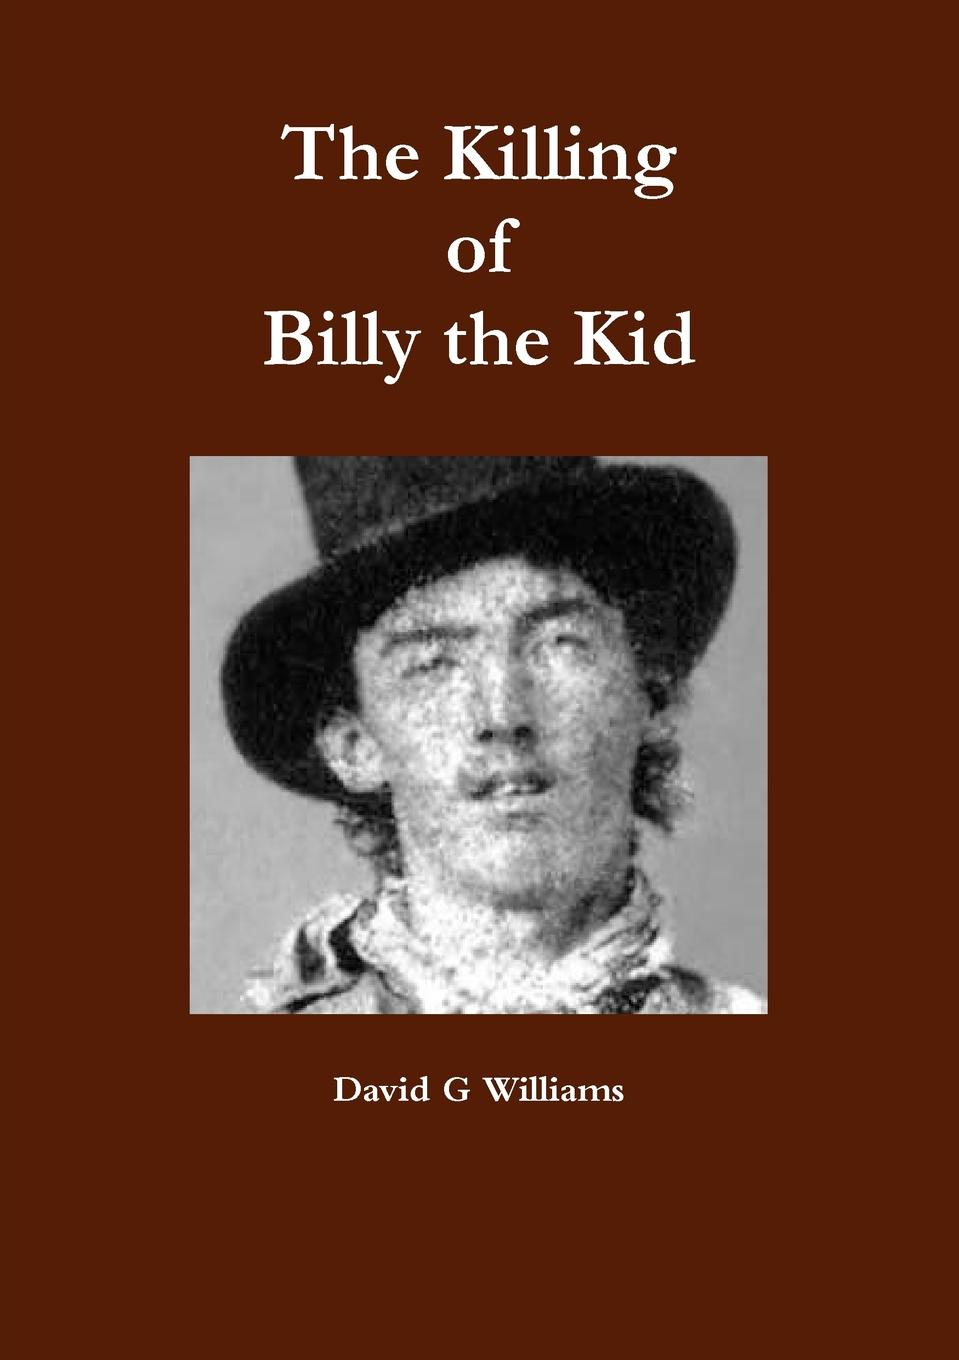 David G Williams The Killing of Billy the Kid